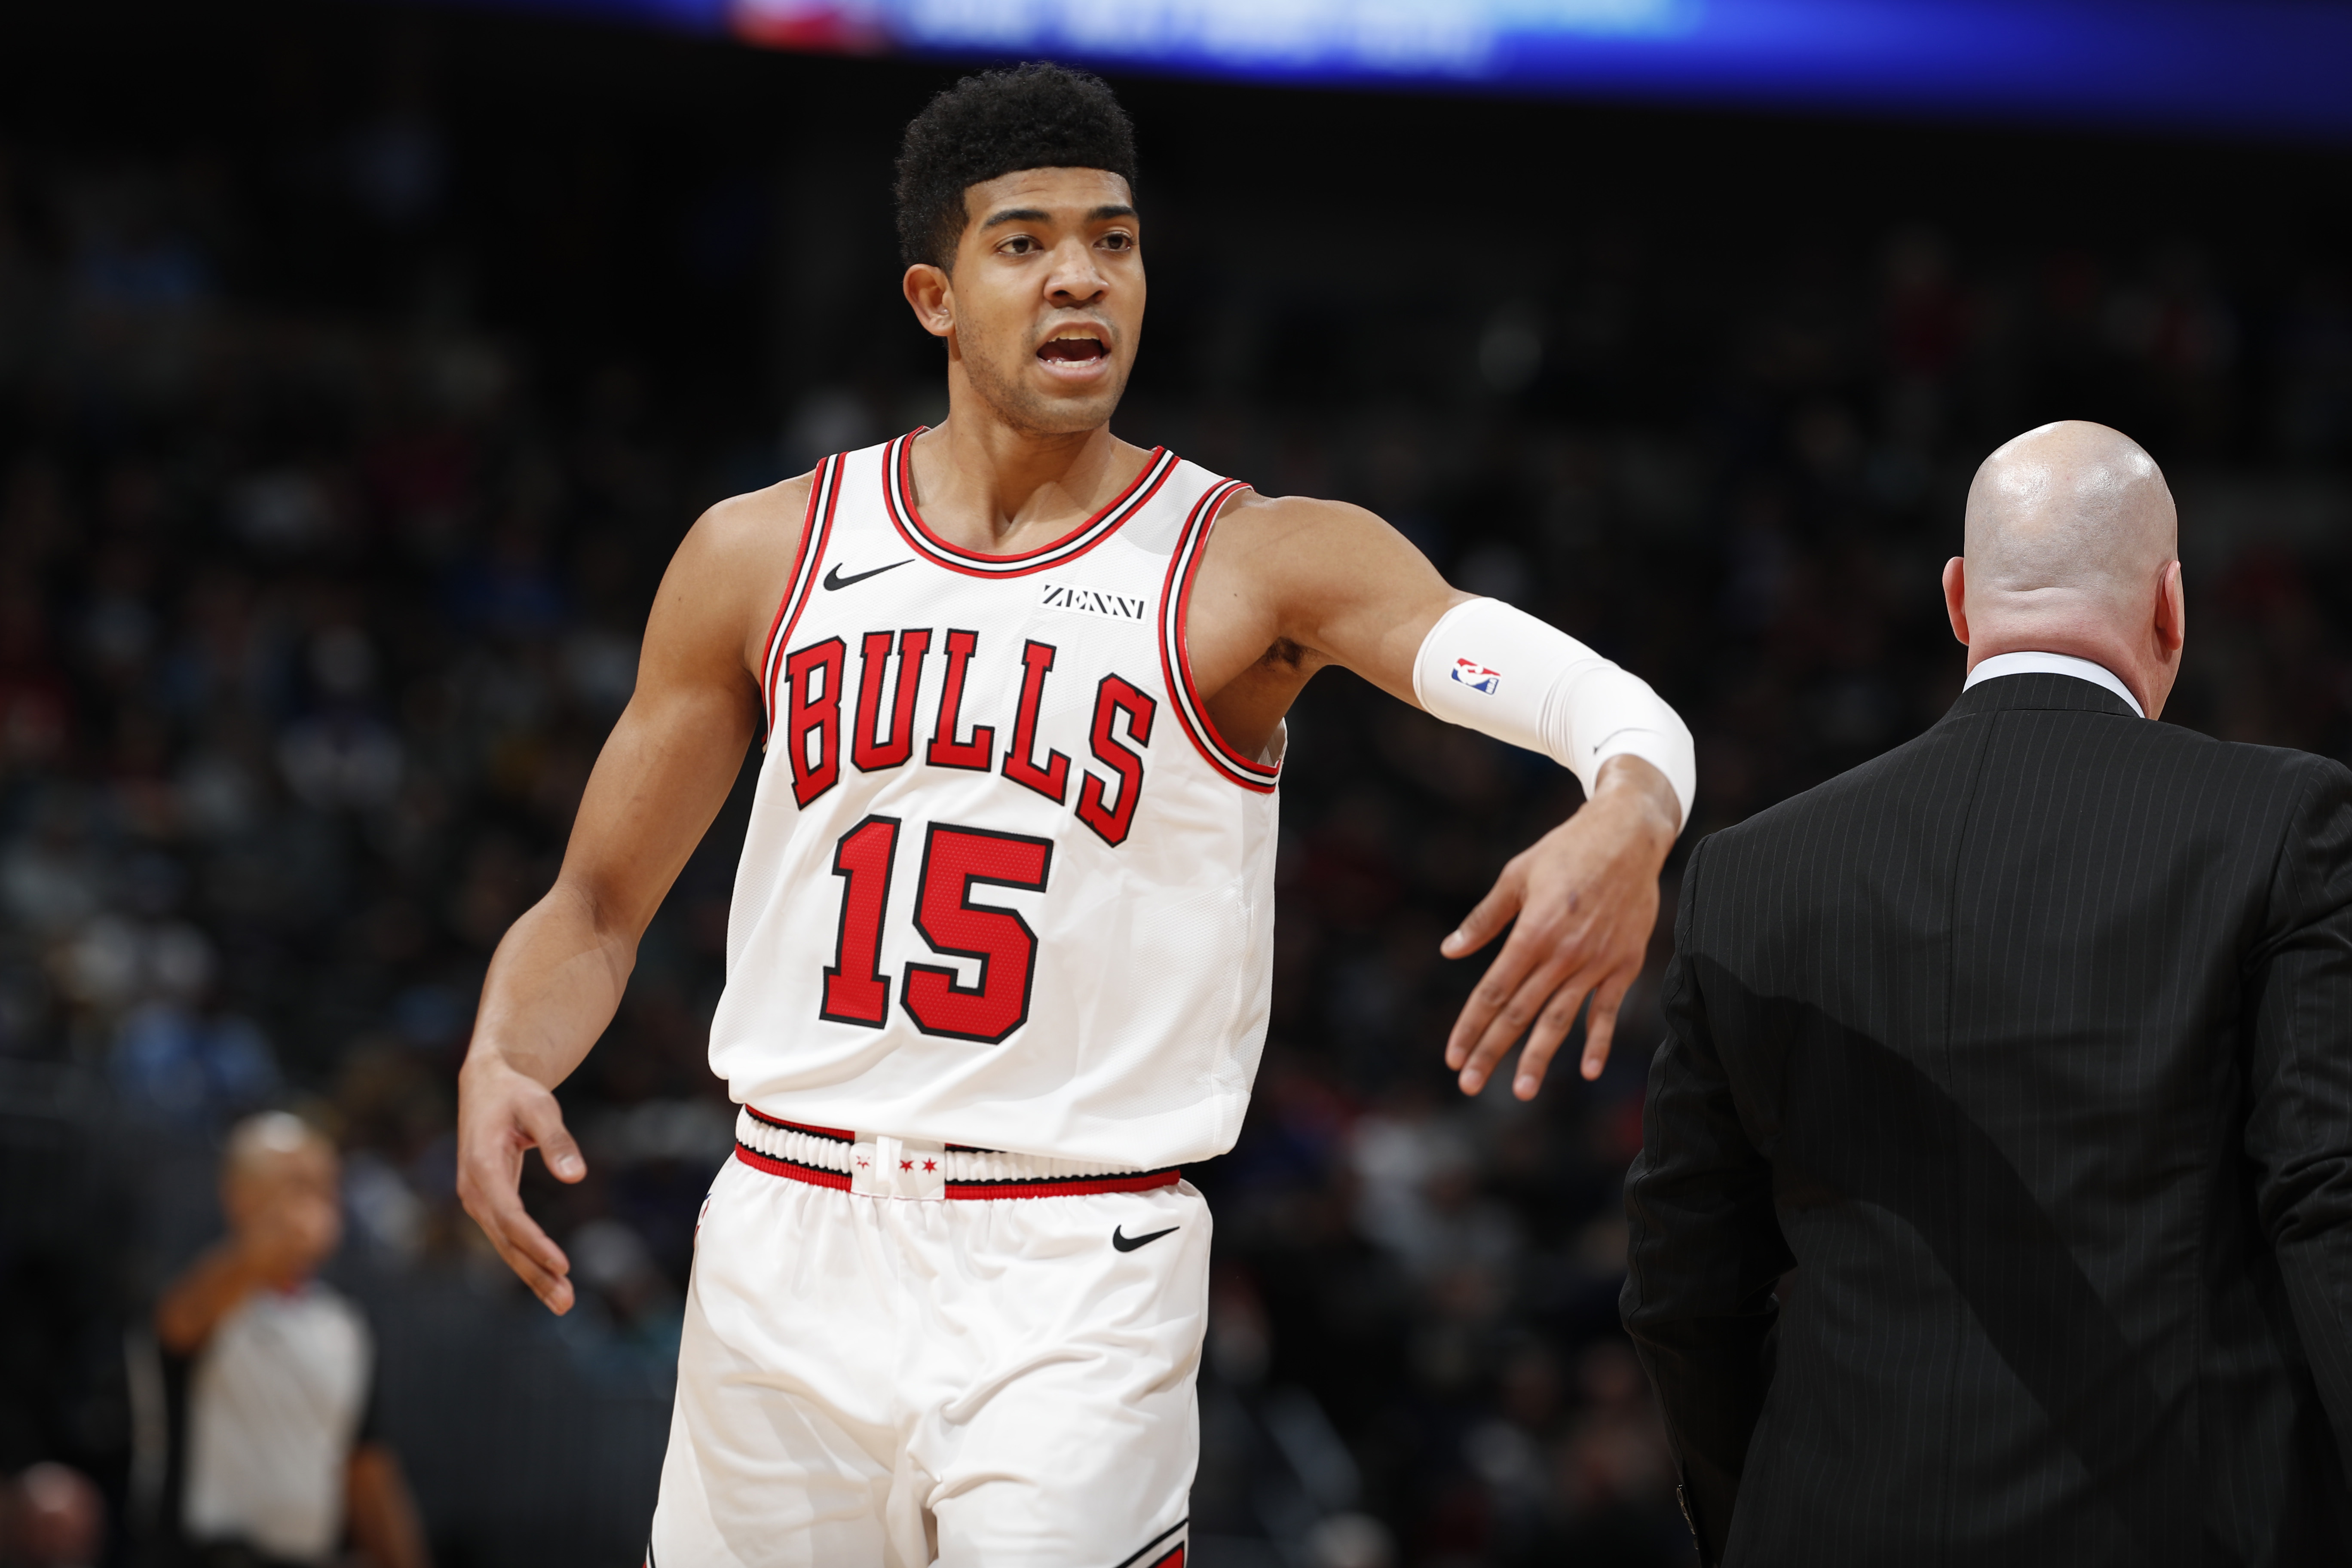 """""""It's very dangerous to compare player to player,'' Bulls coach Jim Boylen said of comparing Chandler Hutchison to Jimmy Butler."""